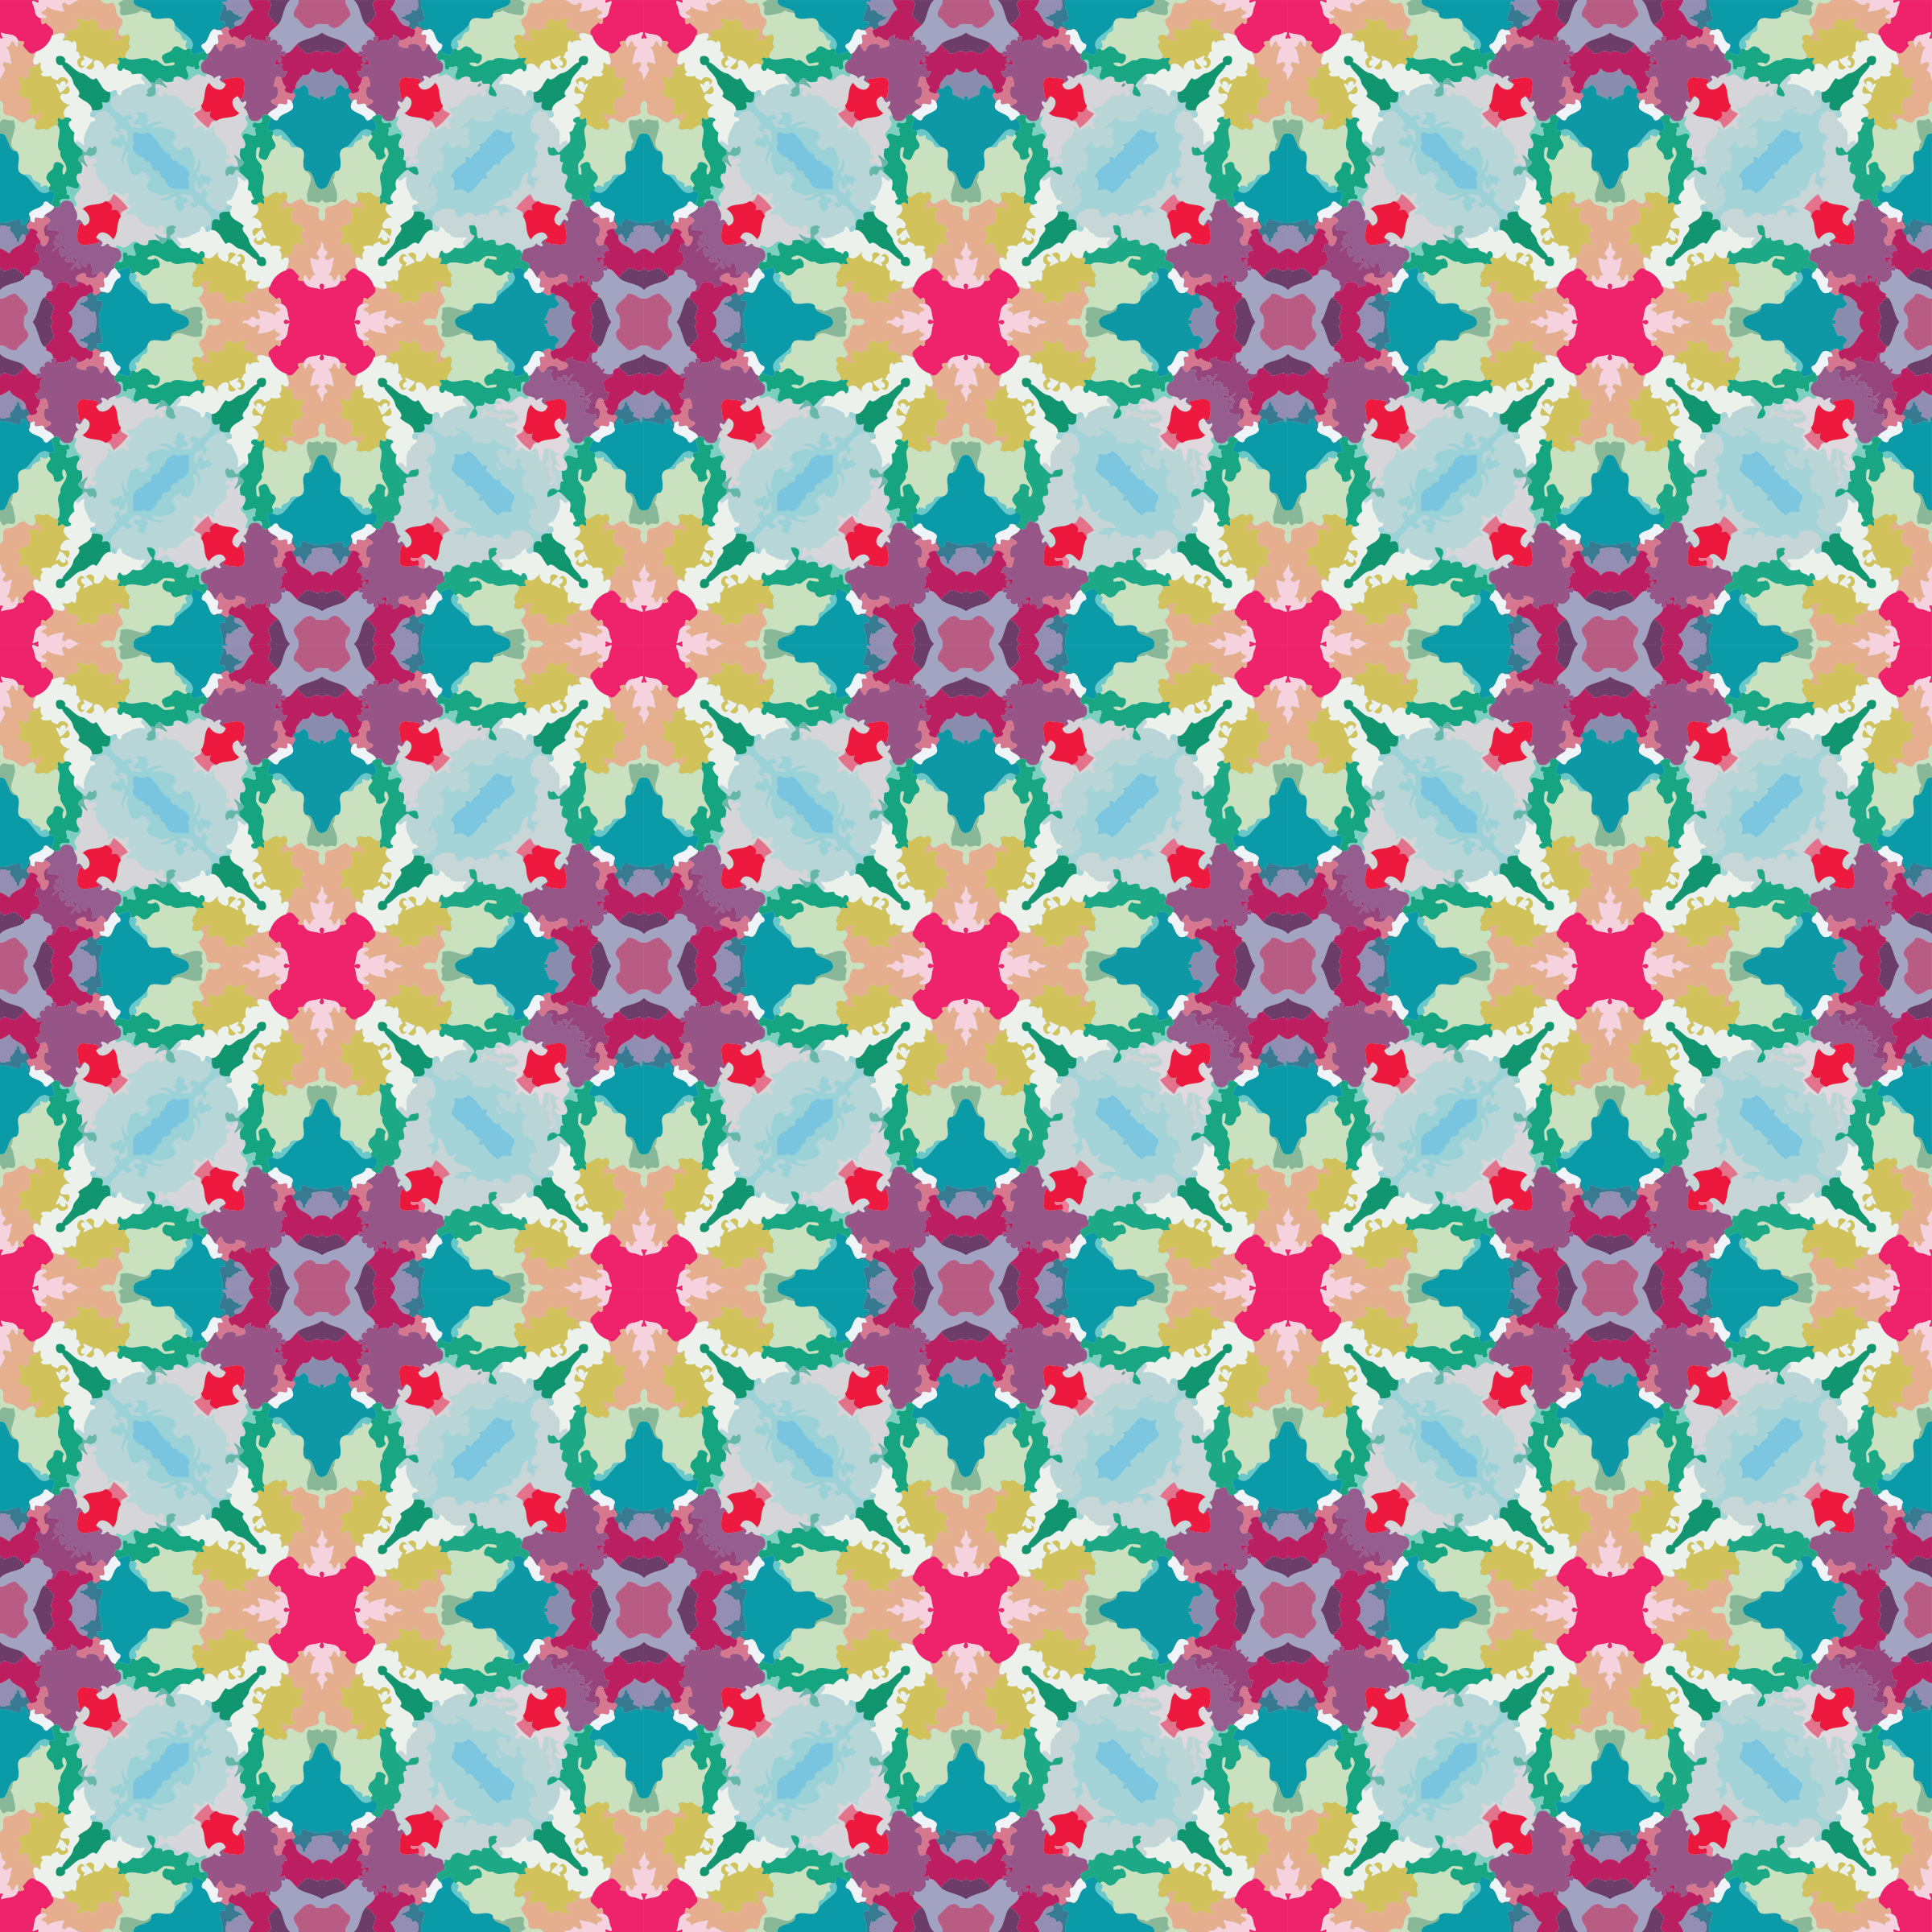 Background pattern 224 (colour 2) by Firkin